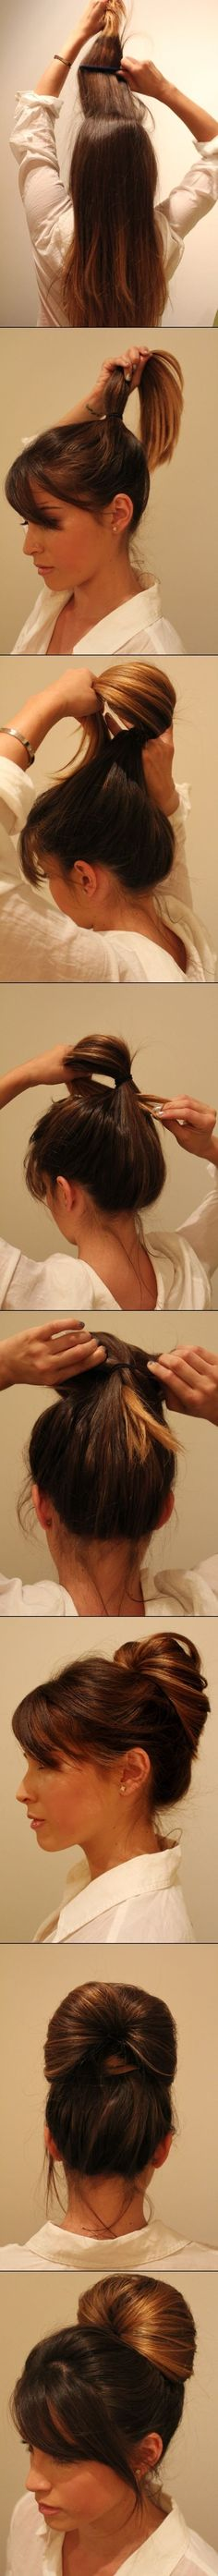 Chignon - 16 Gorgeous Hair for Lazy Girls like Me . → Hair Chignon - 16 Gorgeous Hair for Lazy Girls like Me . Pretty Hairstyles, Easy Hairstyles, Girl Hairstyles, Latest Hairstyles, Wedding Hairstyles, Office Hairstyles, Fashion Hairstyles, School Hairstyles, Medium Hairstyles